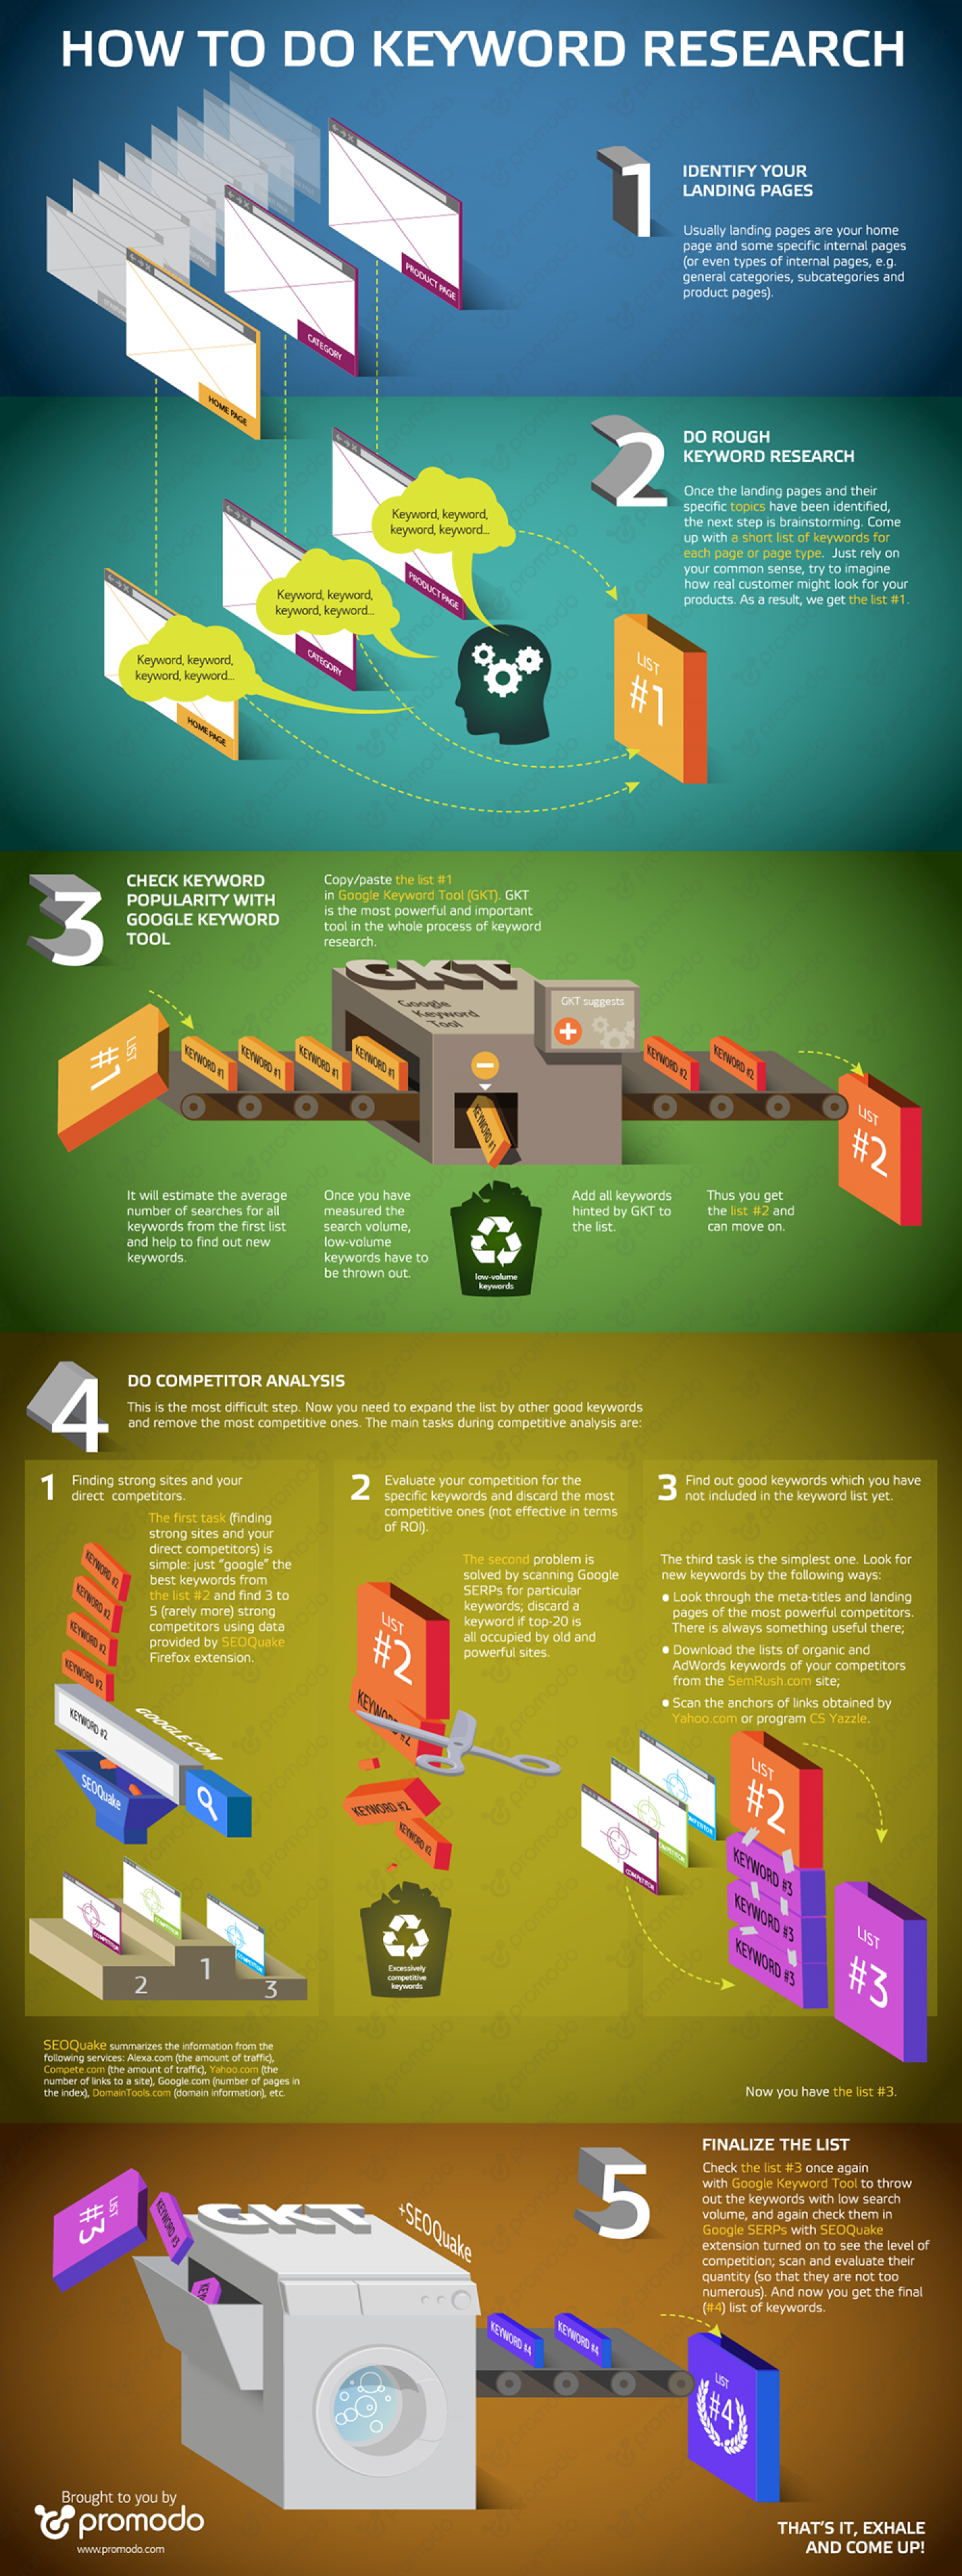 Keyword Research Process Infographic